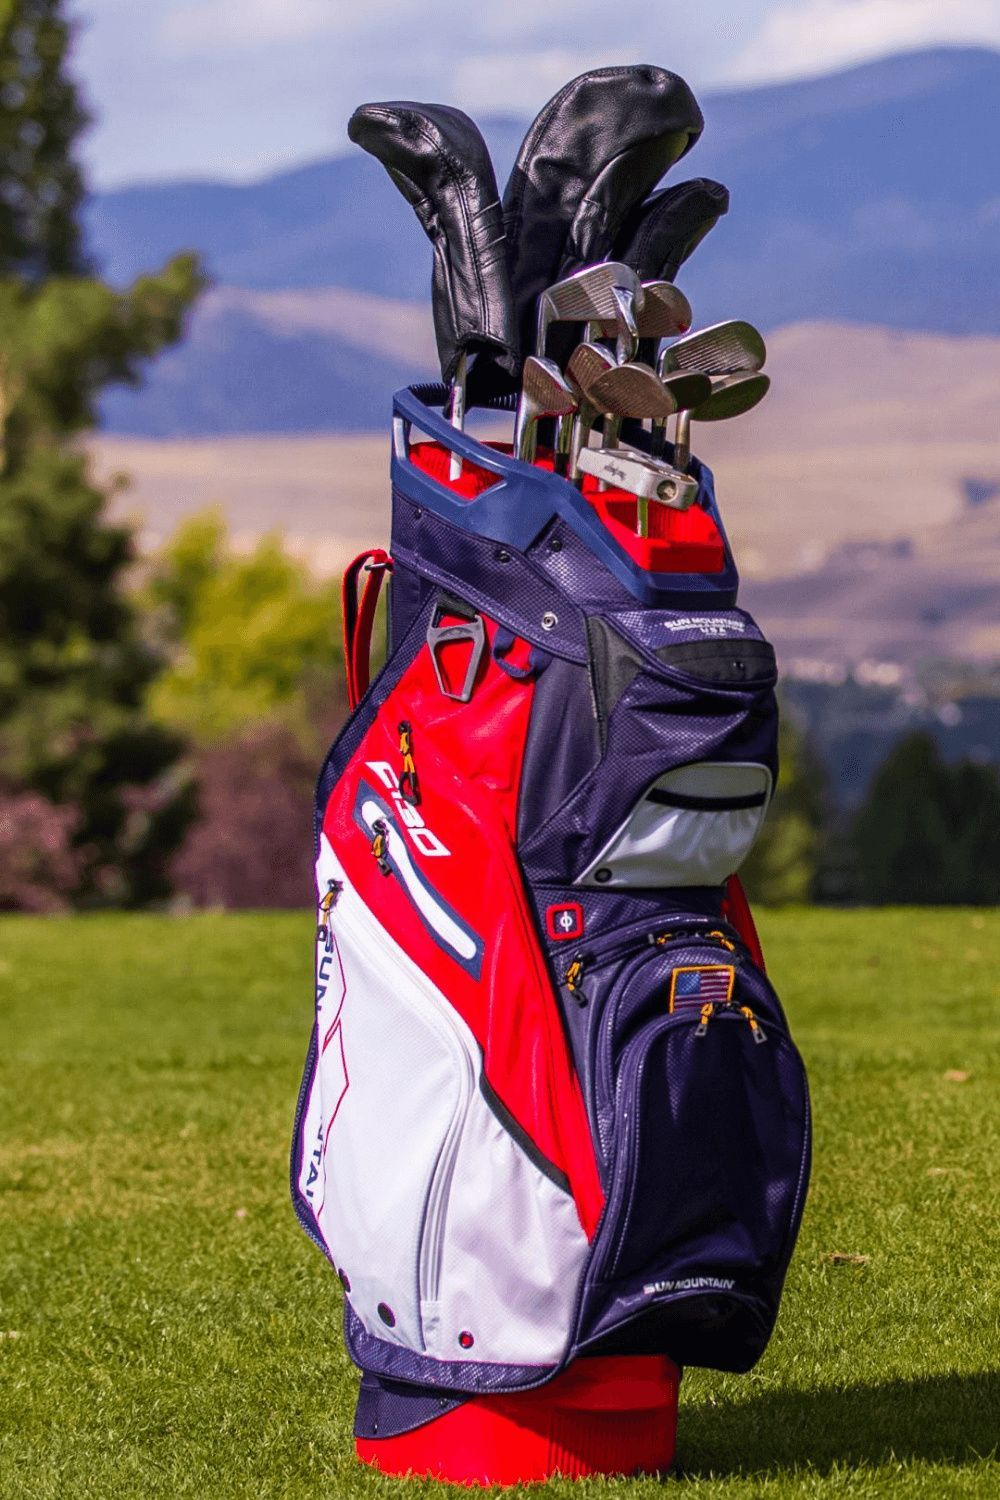 C 130 Supercharged Bag Cart Golf Bags For Sale Sun Mountain In 2020 Golf Bags Golf Bags For Sale Ladies Golf Bags